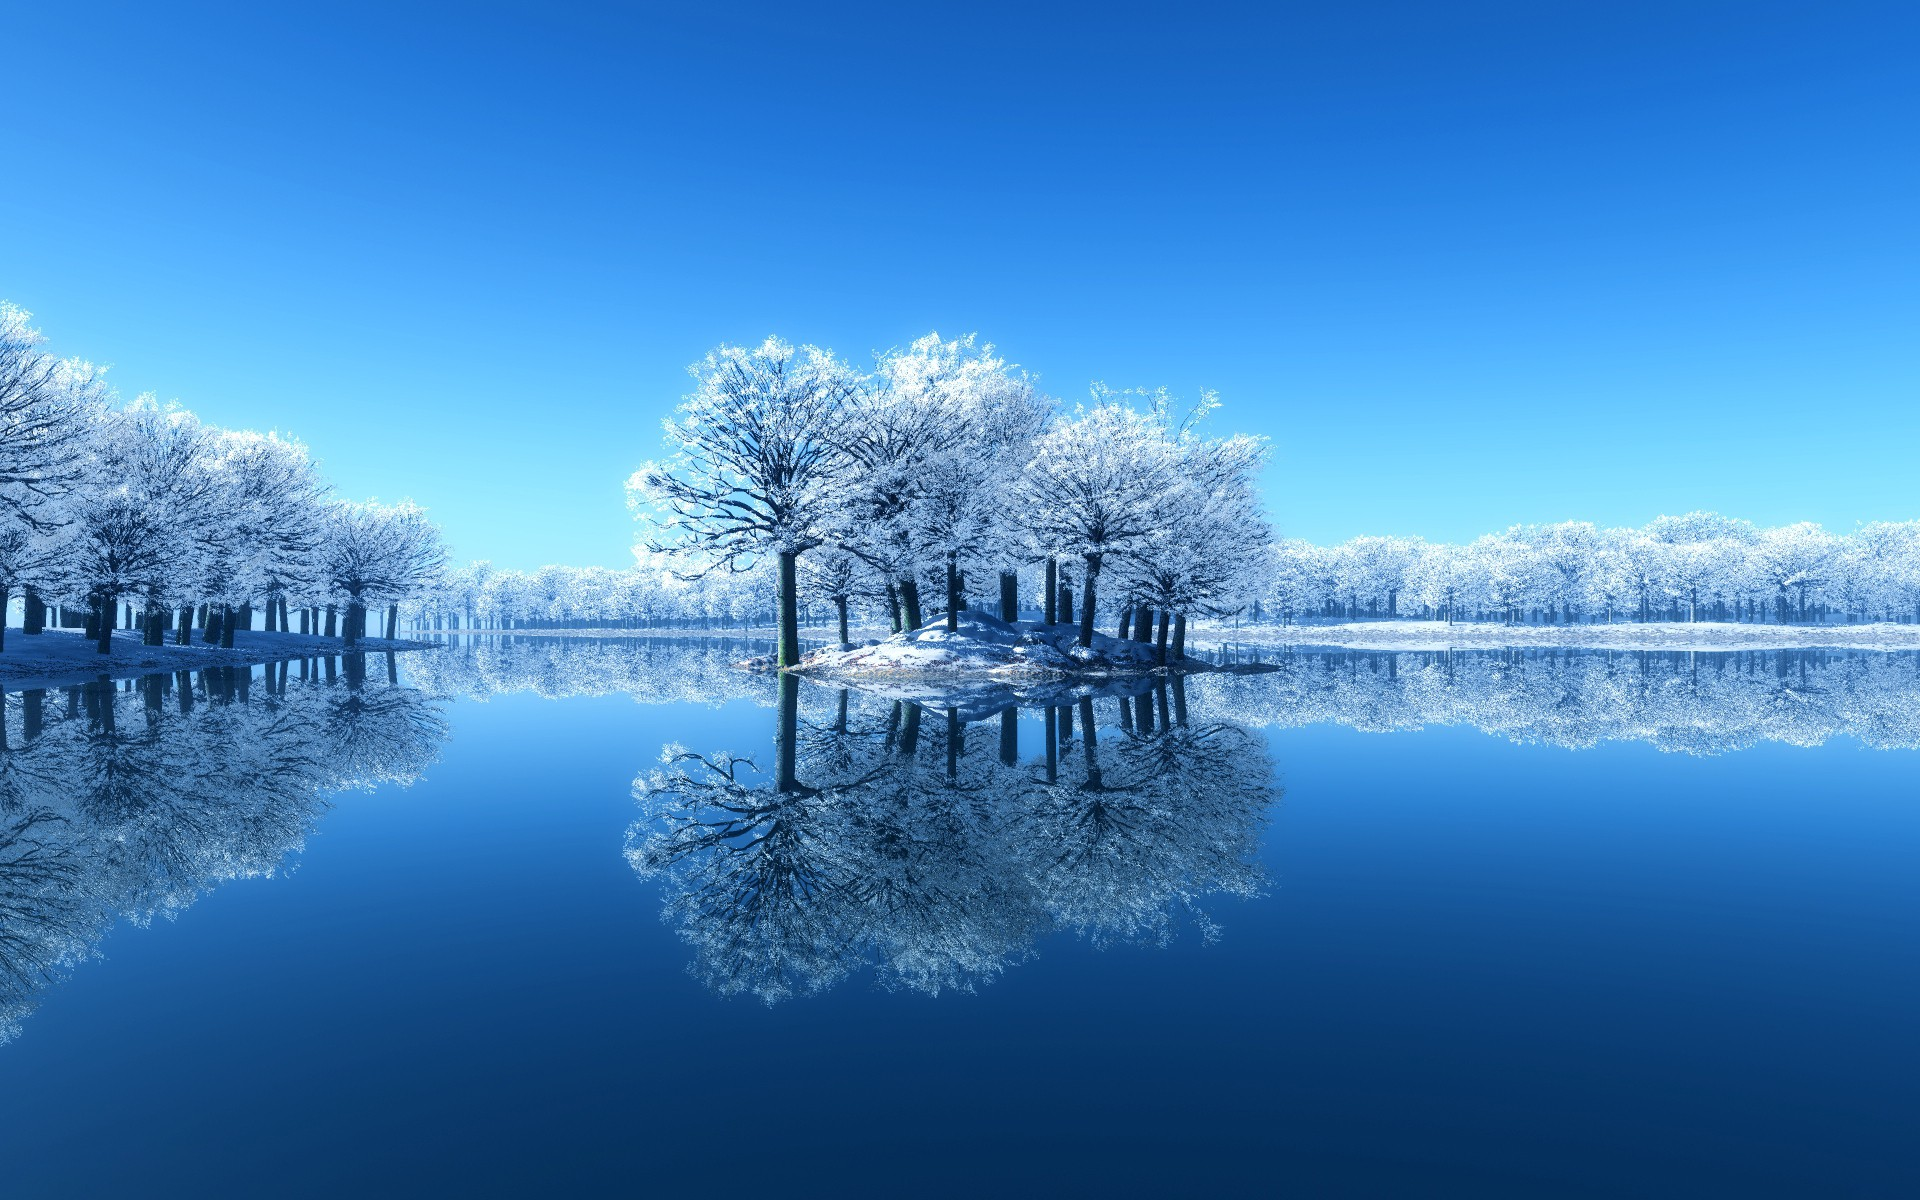 snow images snow in winter hd wallpaper and background photos (36241668)